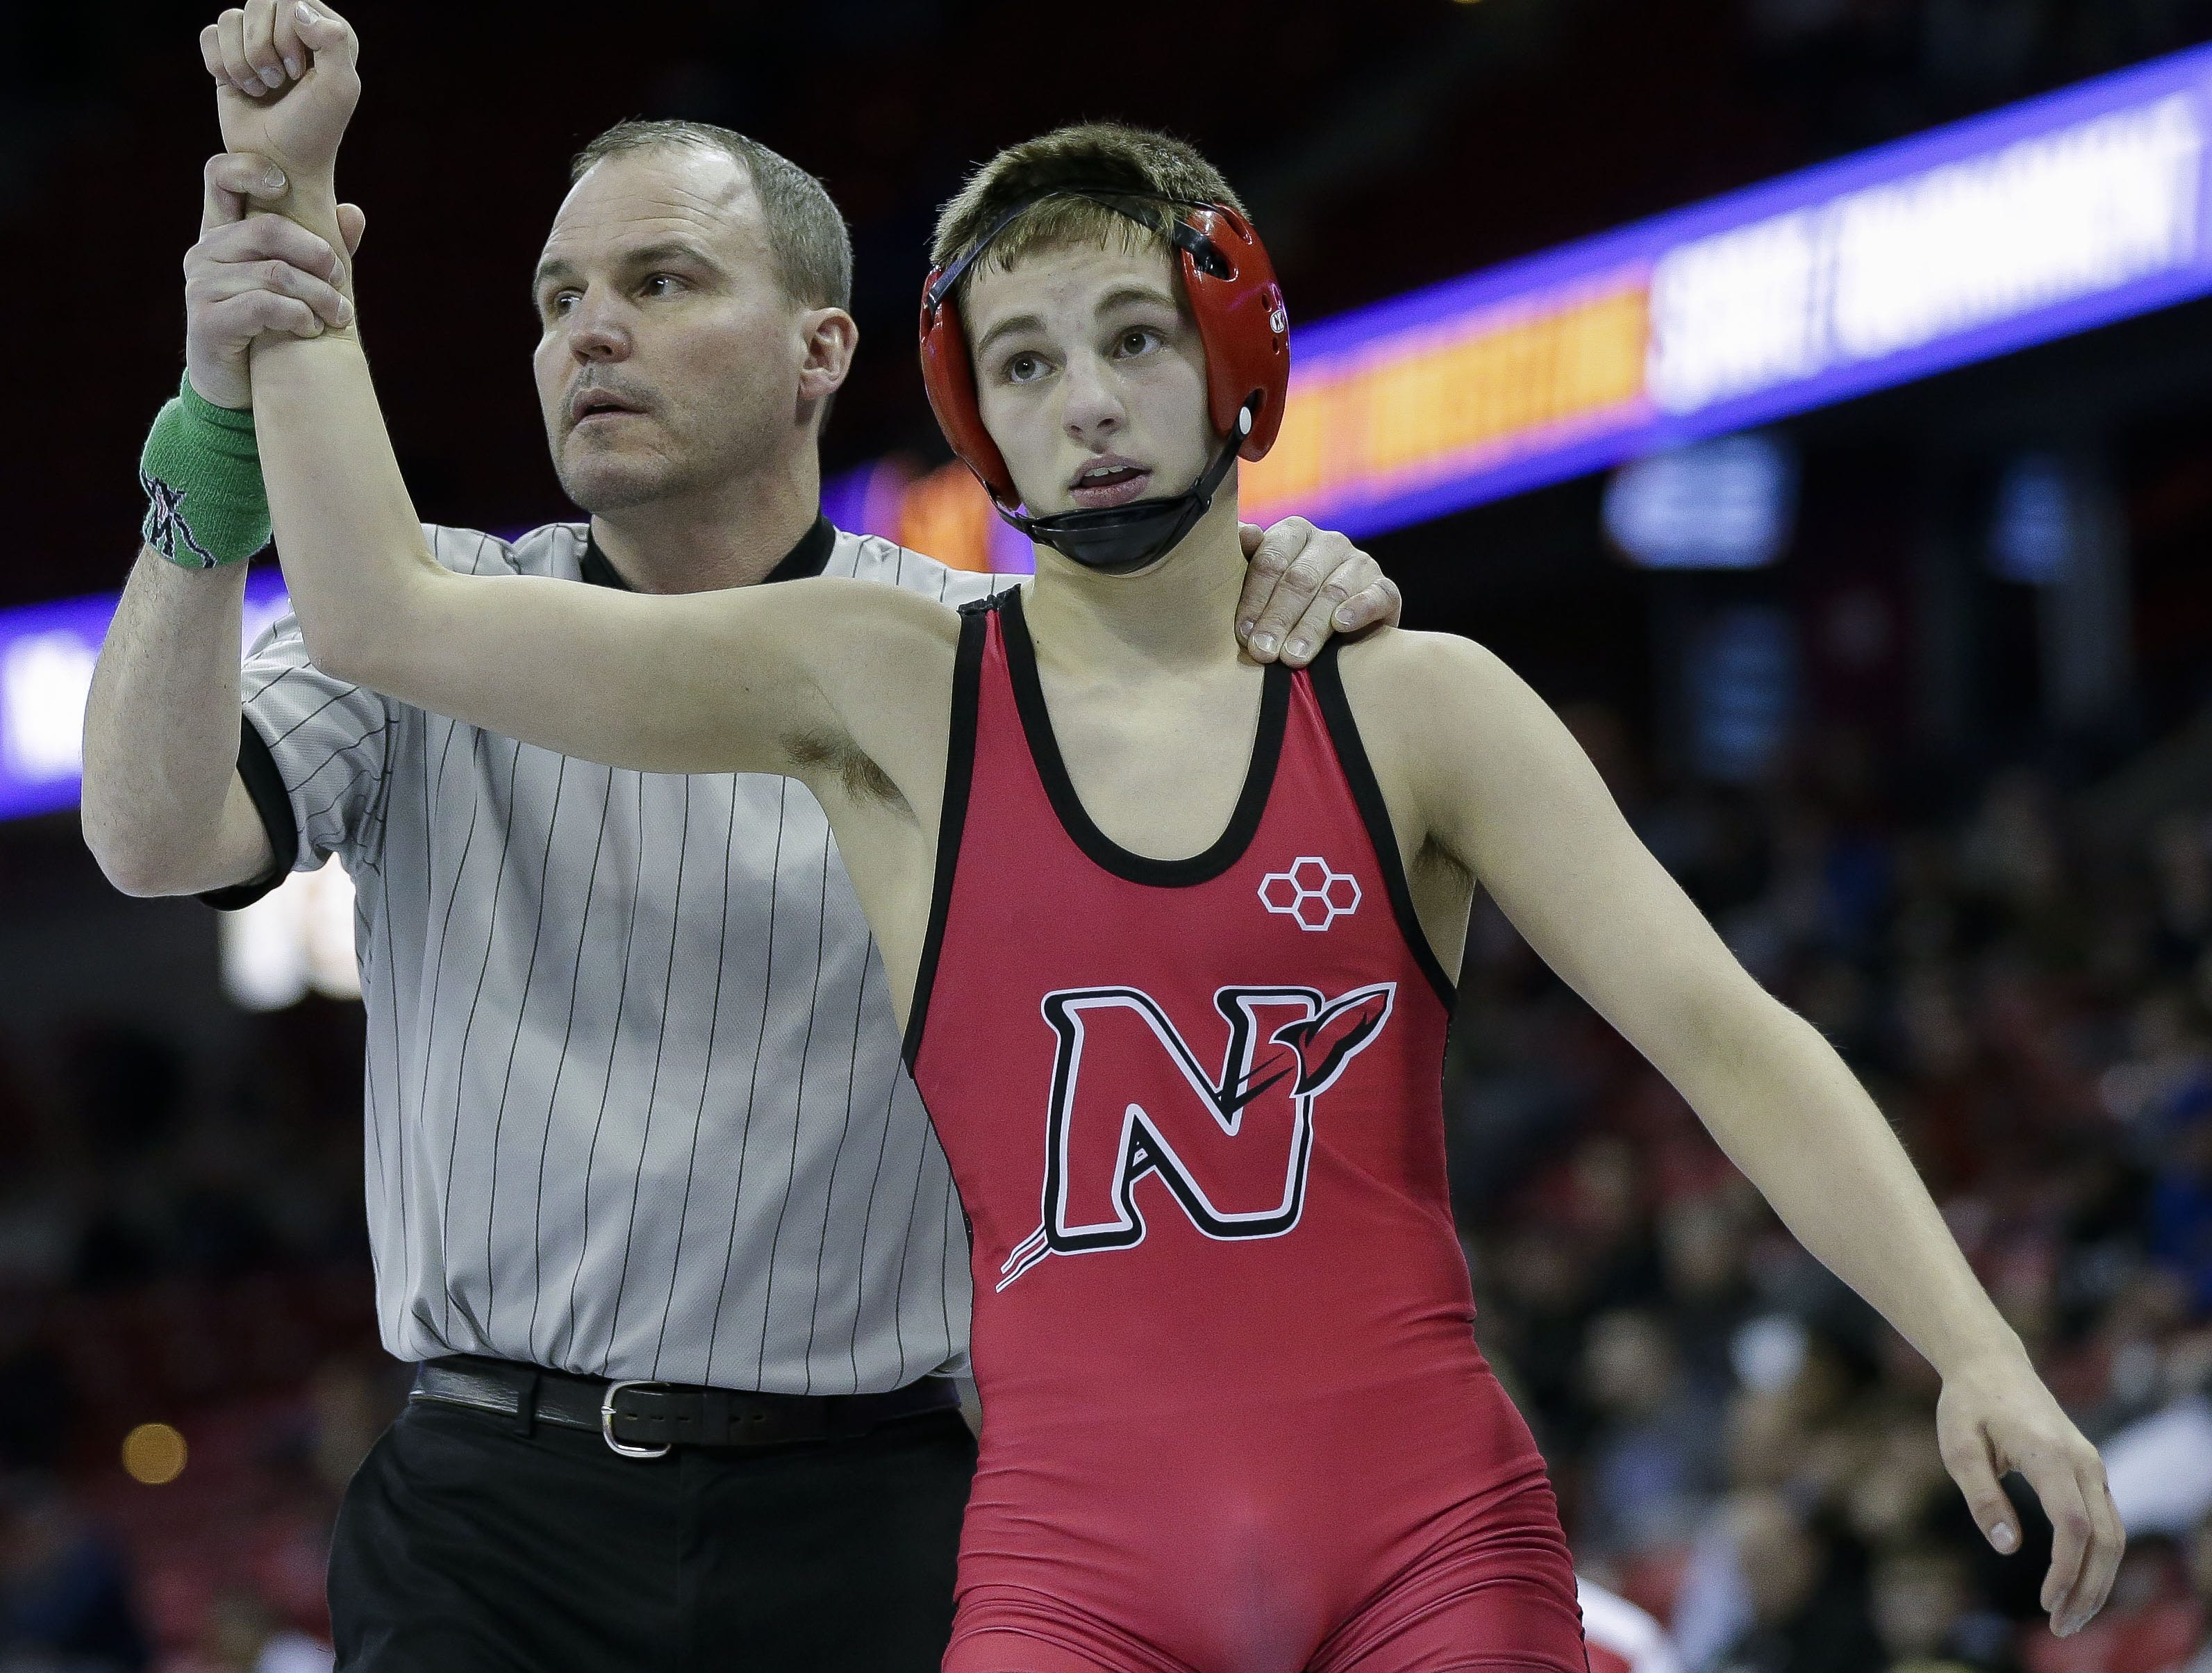 Neenah's Drake Hayward is declared the winner of a Division 1 126-pound preliminary match during the WIAA state wrestling tournament on Thursday, February 21, 2019, at the Kohl Center in Madison, Wis. Tork Mason/USA TODAY NETWORK-Wisconsin